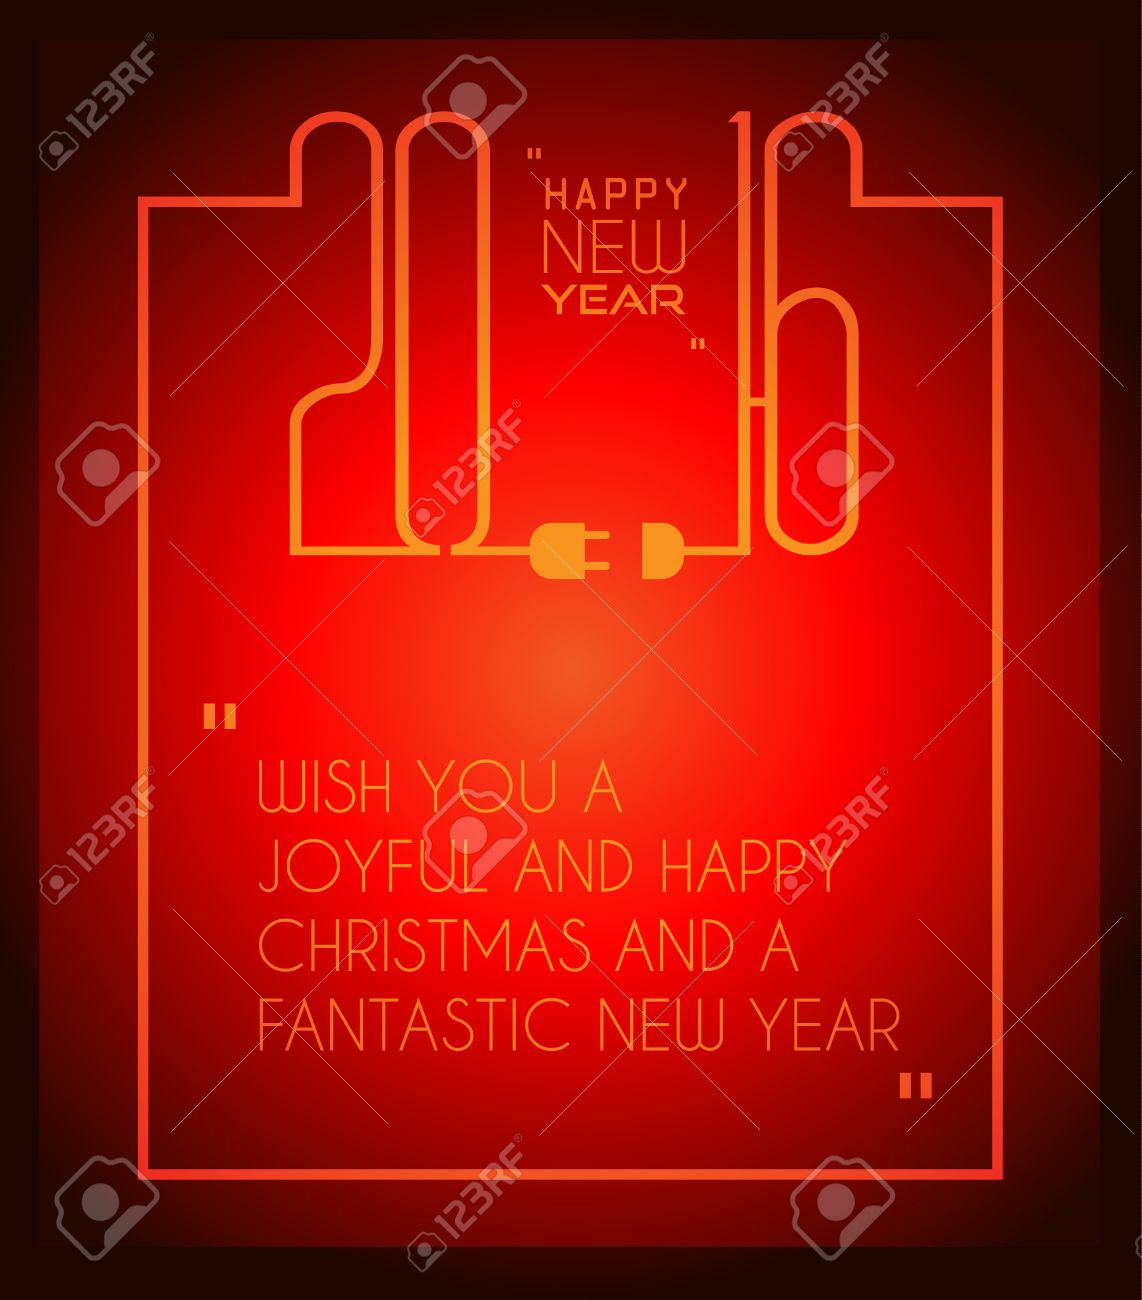 2016 happy new year background for your christmas dinner invitations festive posters restaurant menu